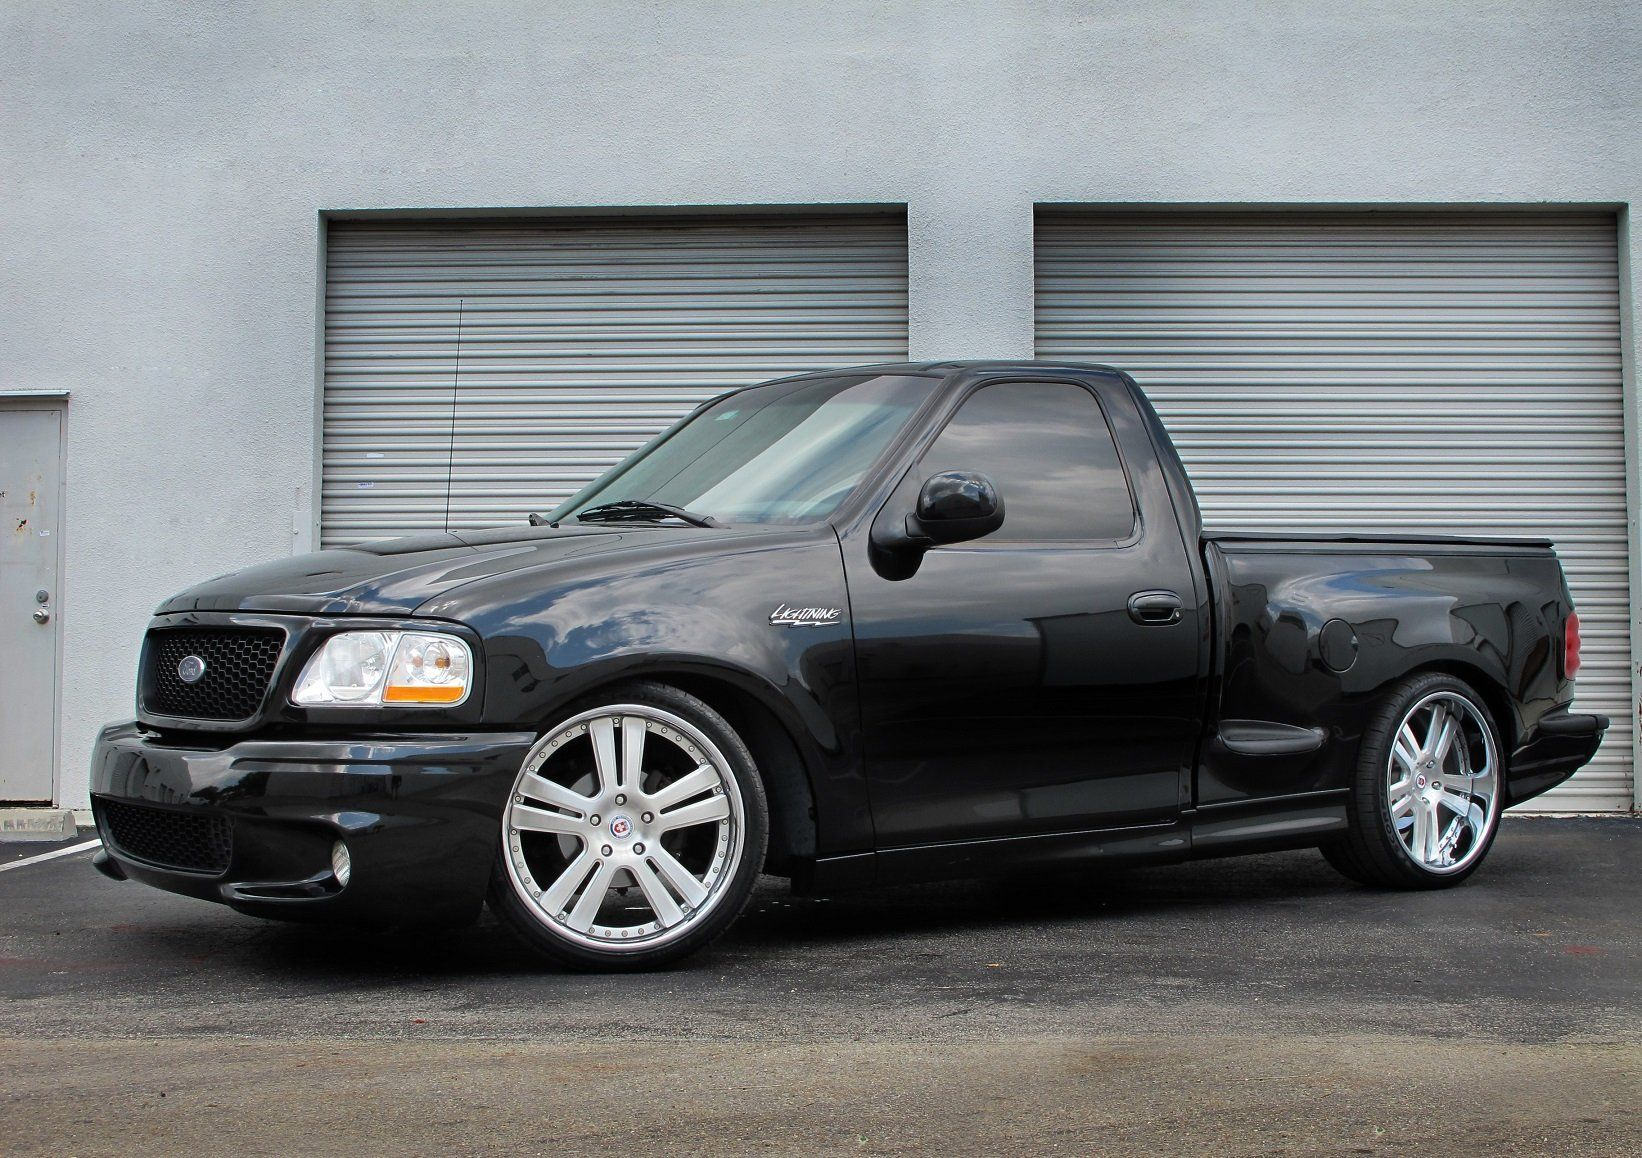 Cars wallpapers and ford lightning on pinterest 2048 1536 ford lightning wallpaper 44